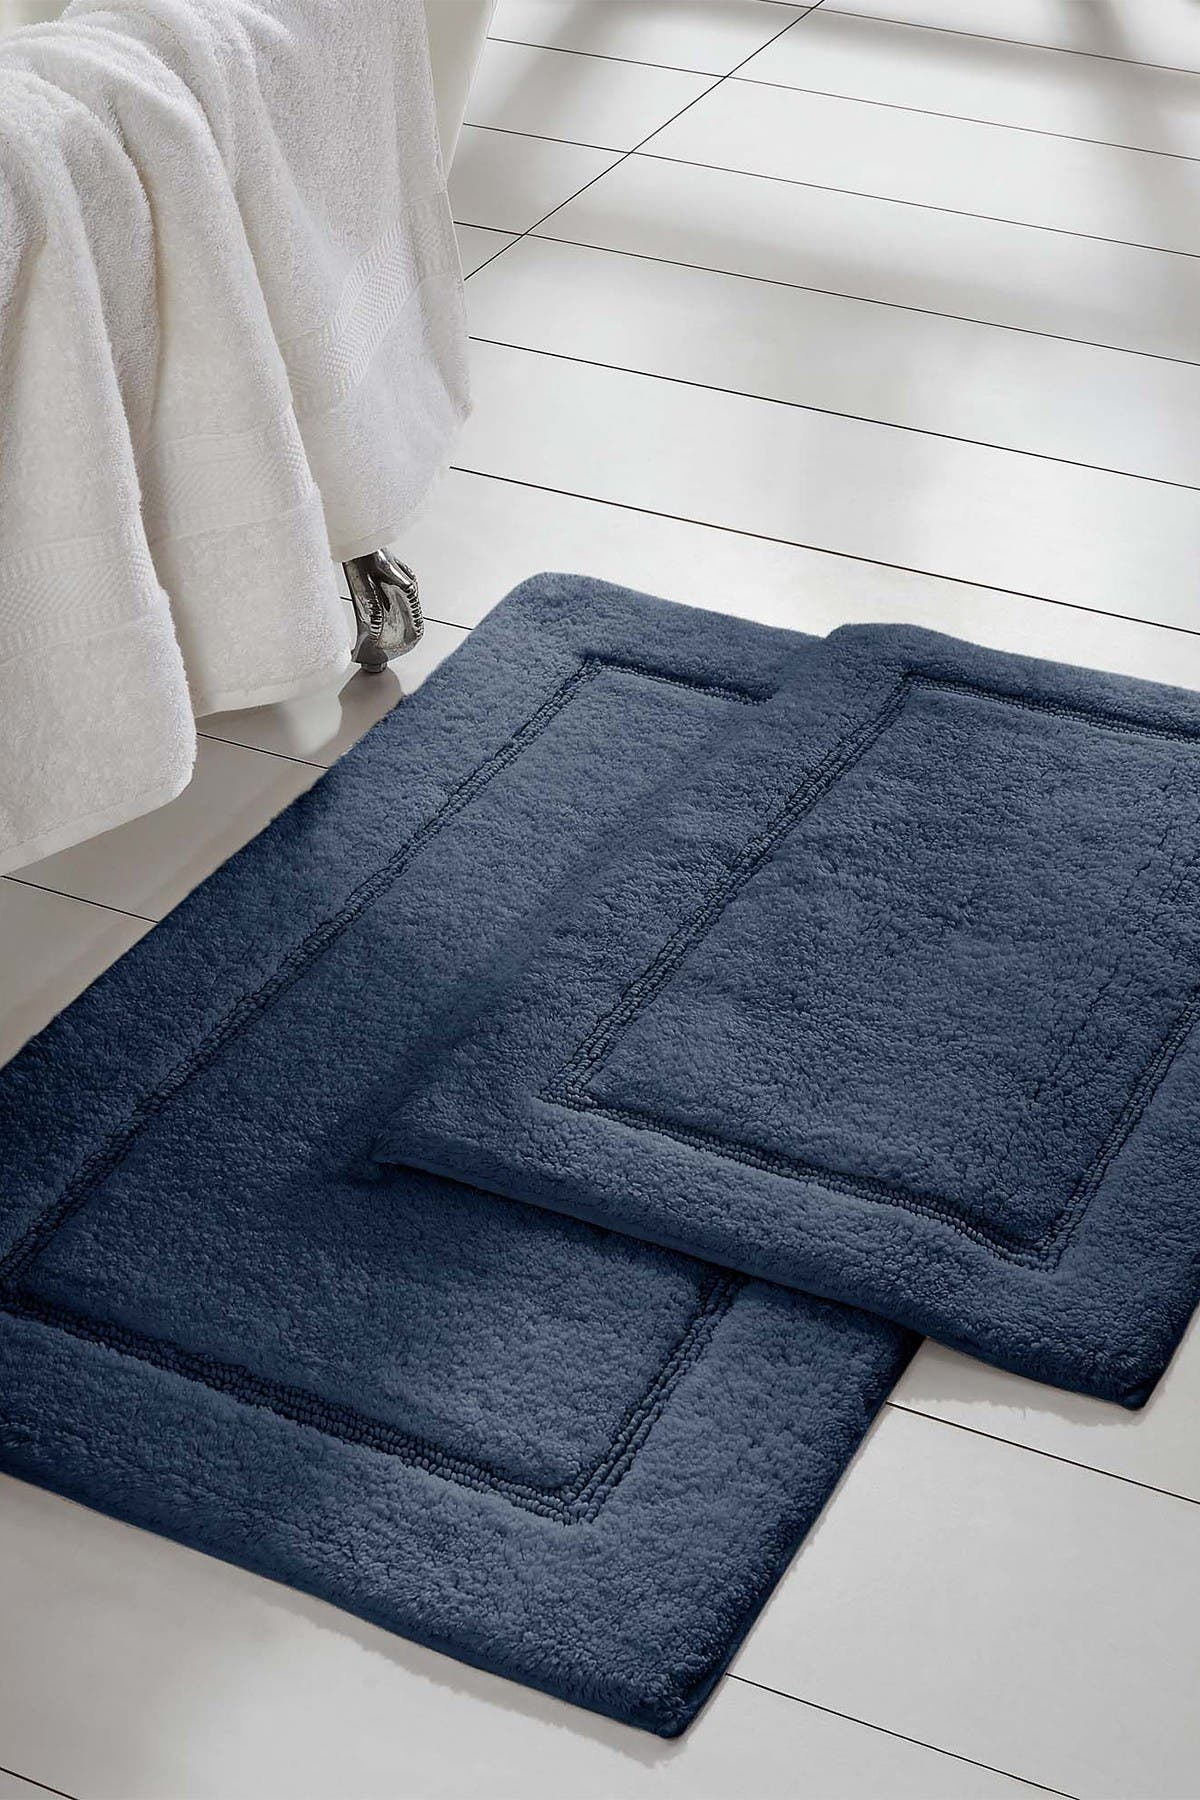 Image of Modern Threads 2-Piece Solid Loop with Non-Slip Backing Bath Mat Set - Navy